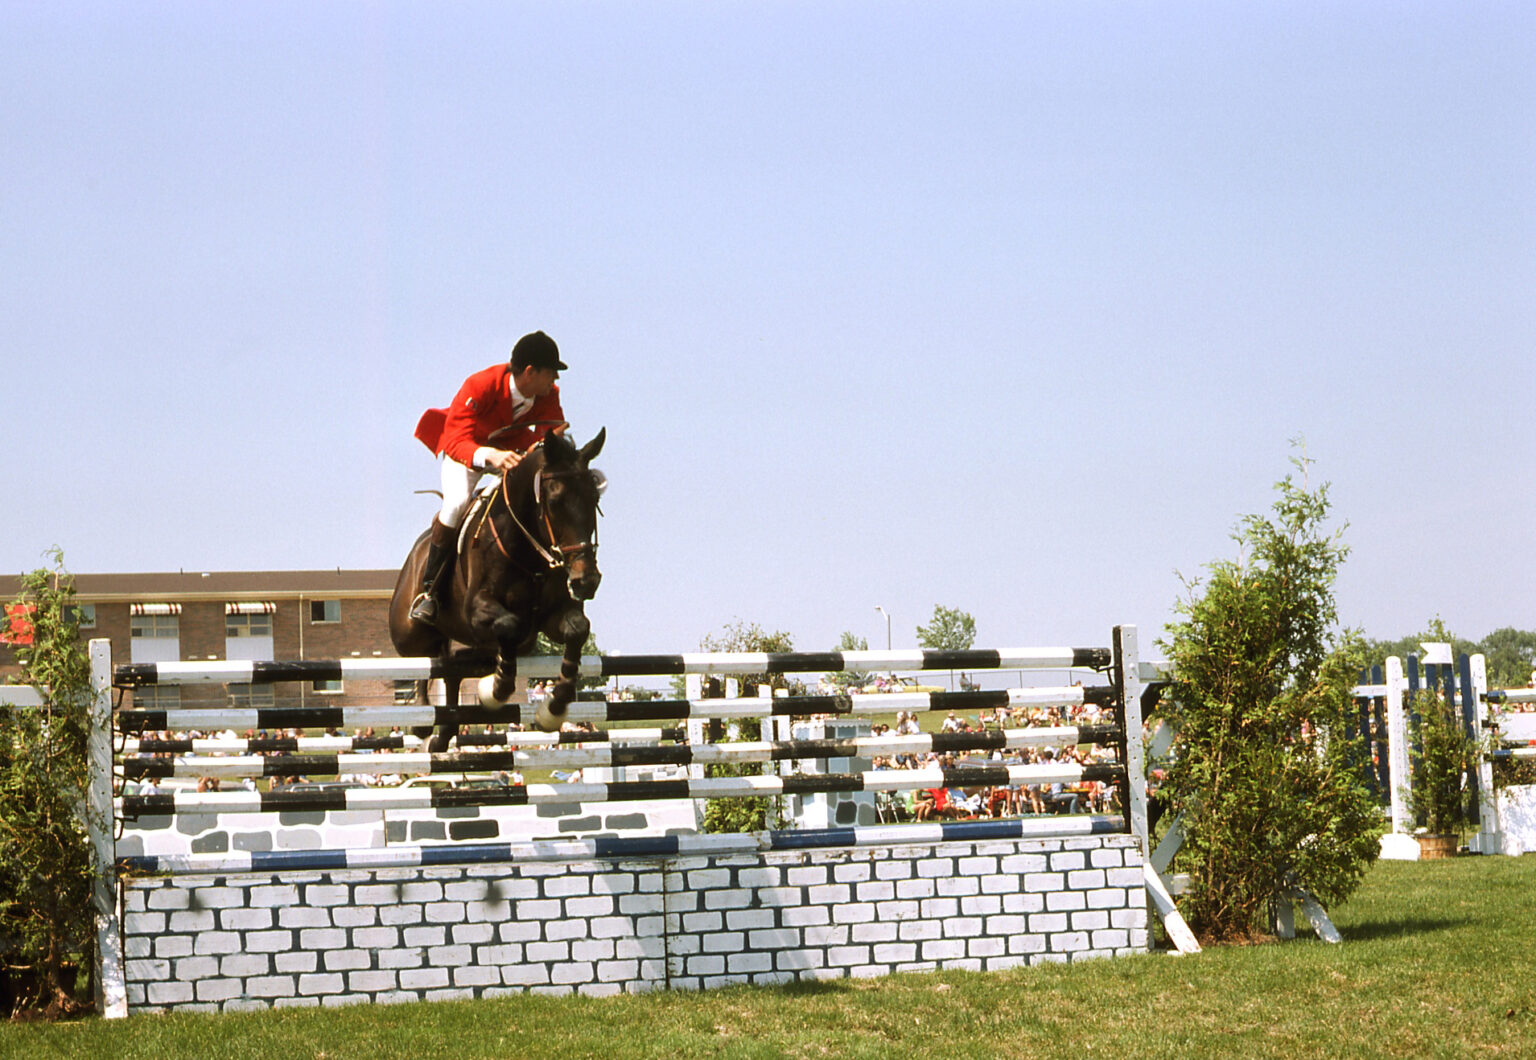 A colour photograph of a rider and horse jumping over a fence.